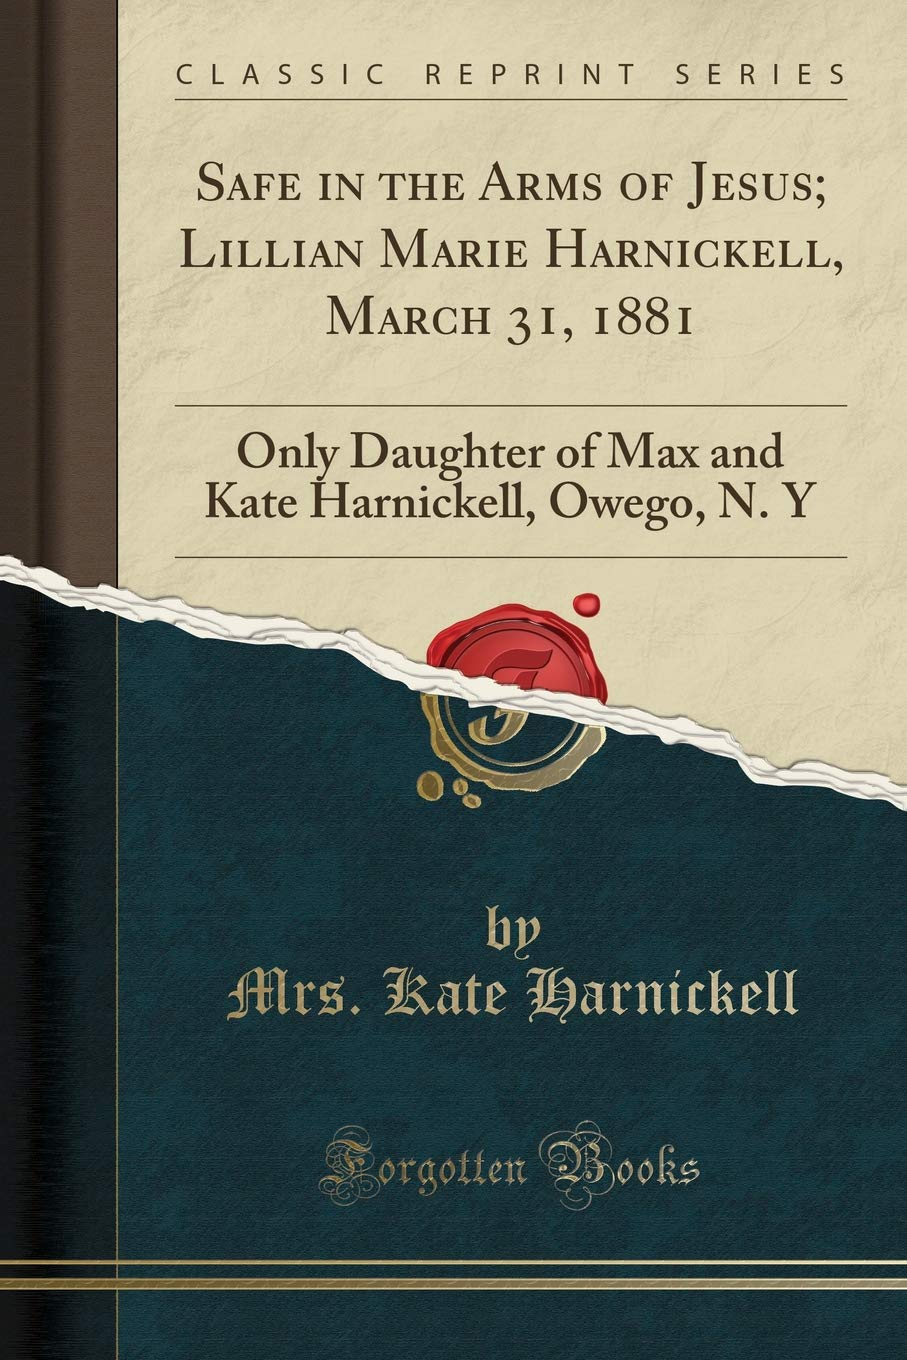 Download Safe in the Arms of Jesus; Lillian Marie Harnickell, March 31, 1881: Only Daughter of Max and Kate Harnickell, Owego, N. Y (Classic Reprint) PDF